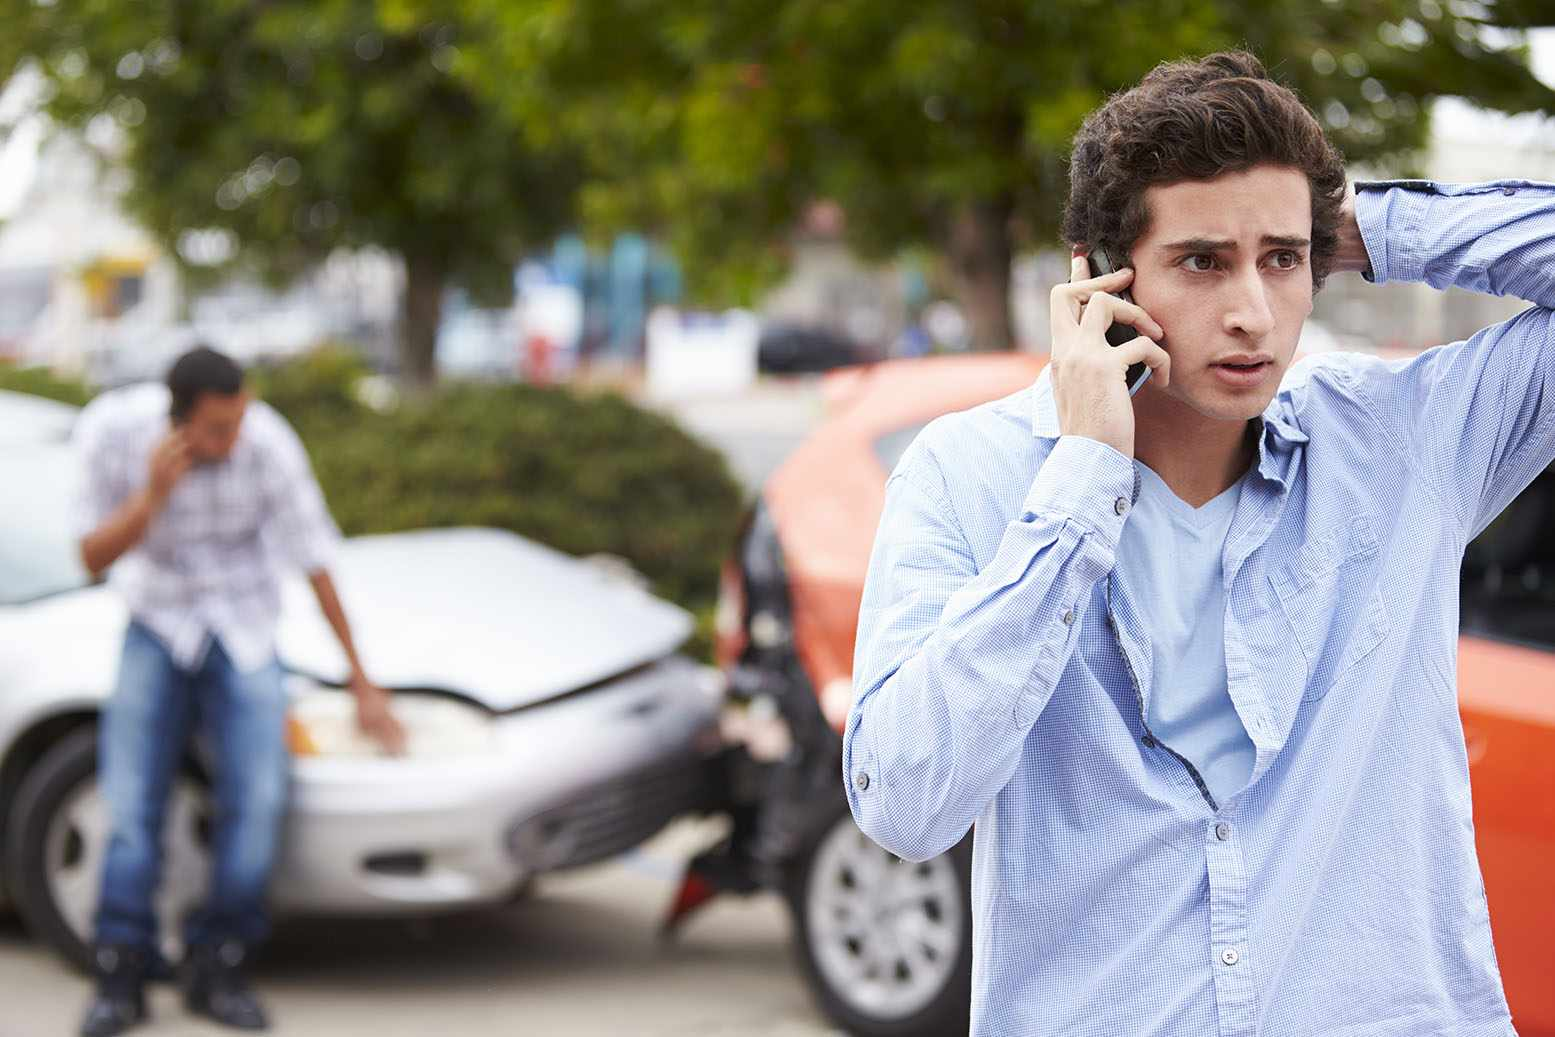 North Carolina Auto Accident Lawyers